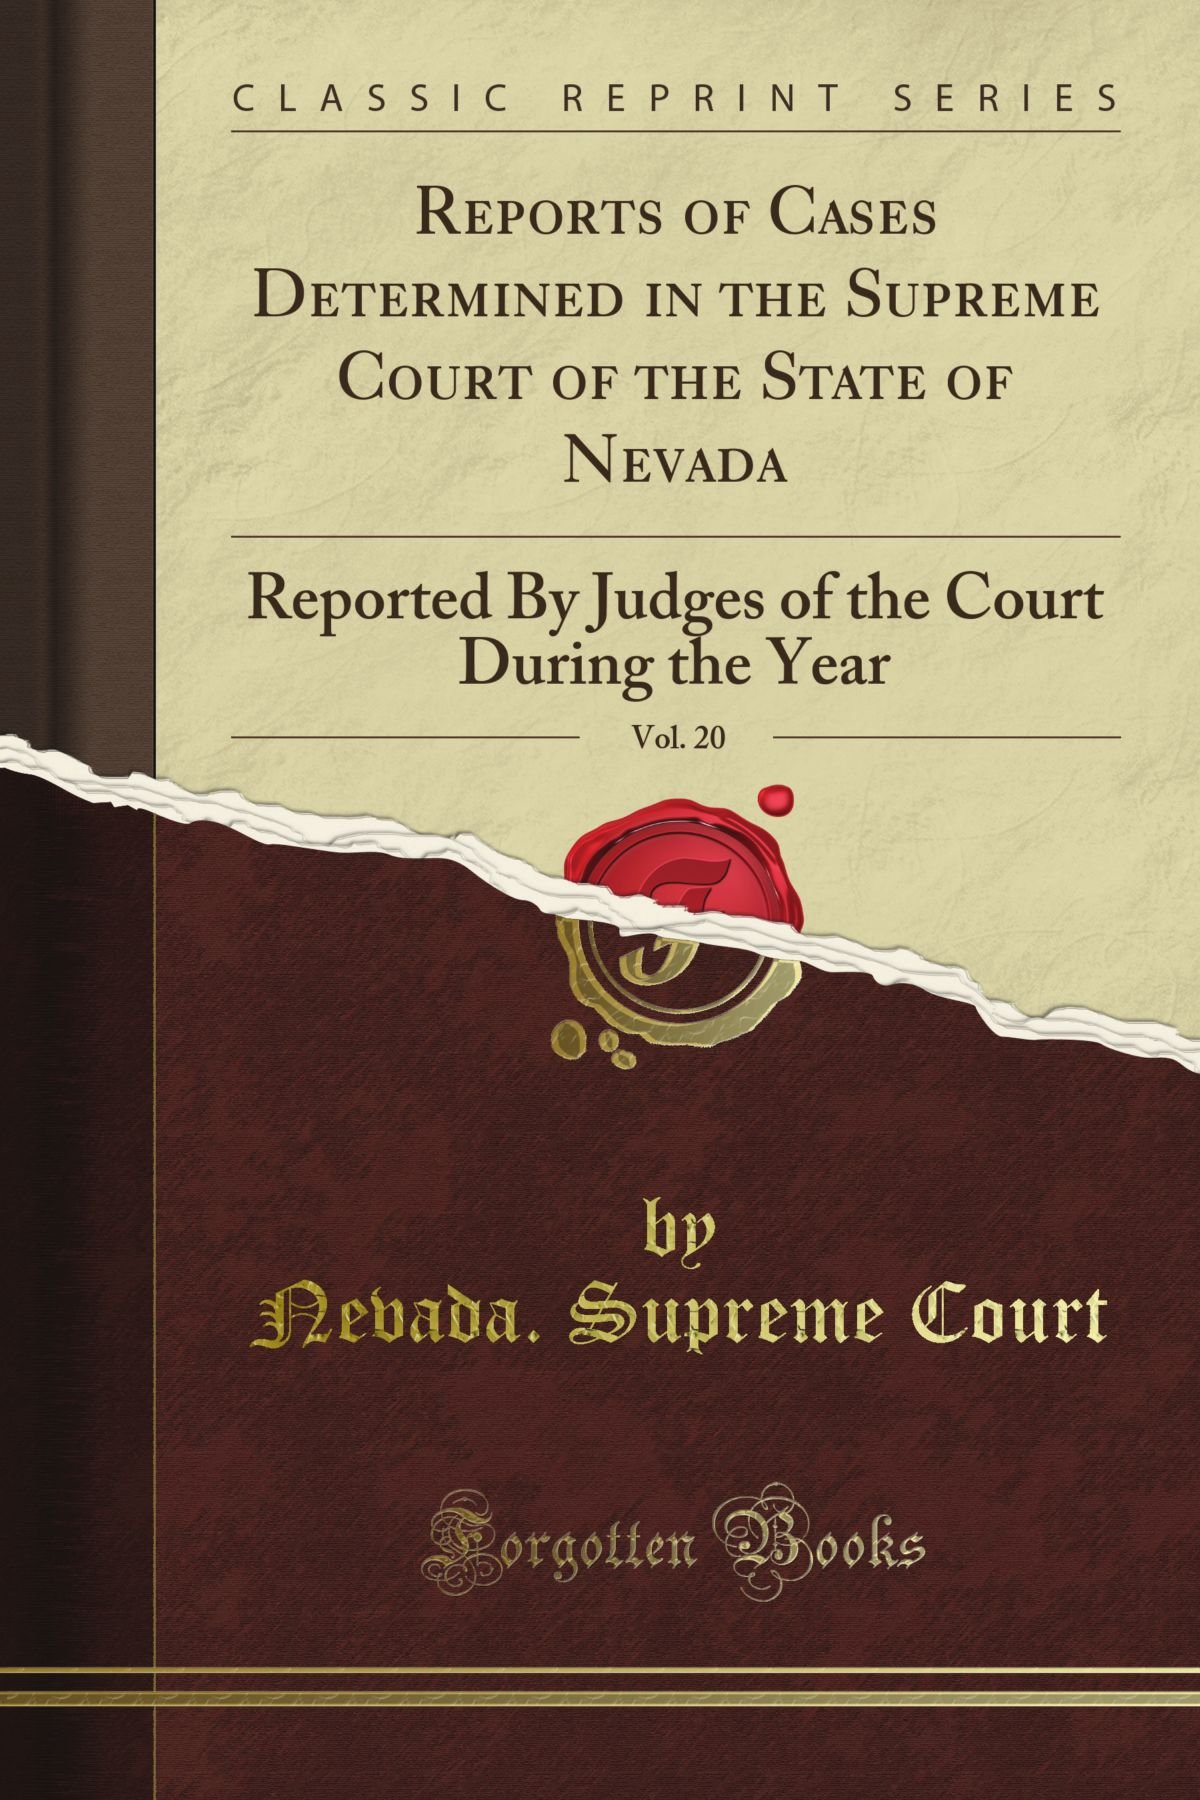 Read Online Reports of Cases Determined in the Supreme Court of the State of Nevada: Reported By Judges of the Court During the Year, Vol. 20 (Classic Reprint) PDF